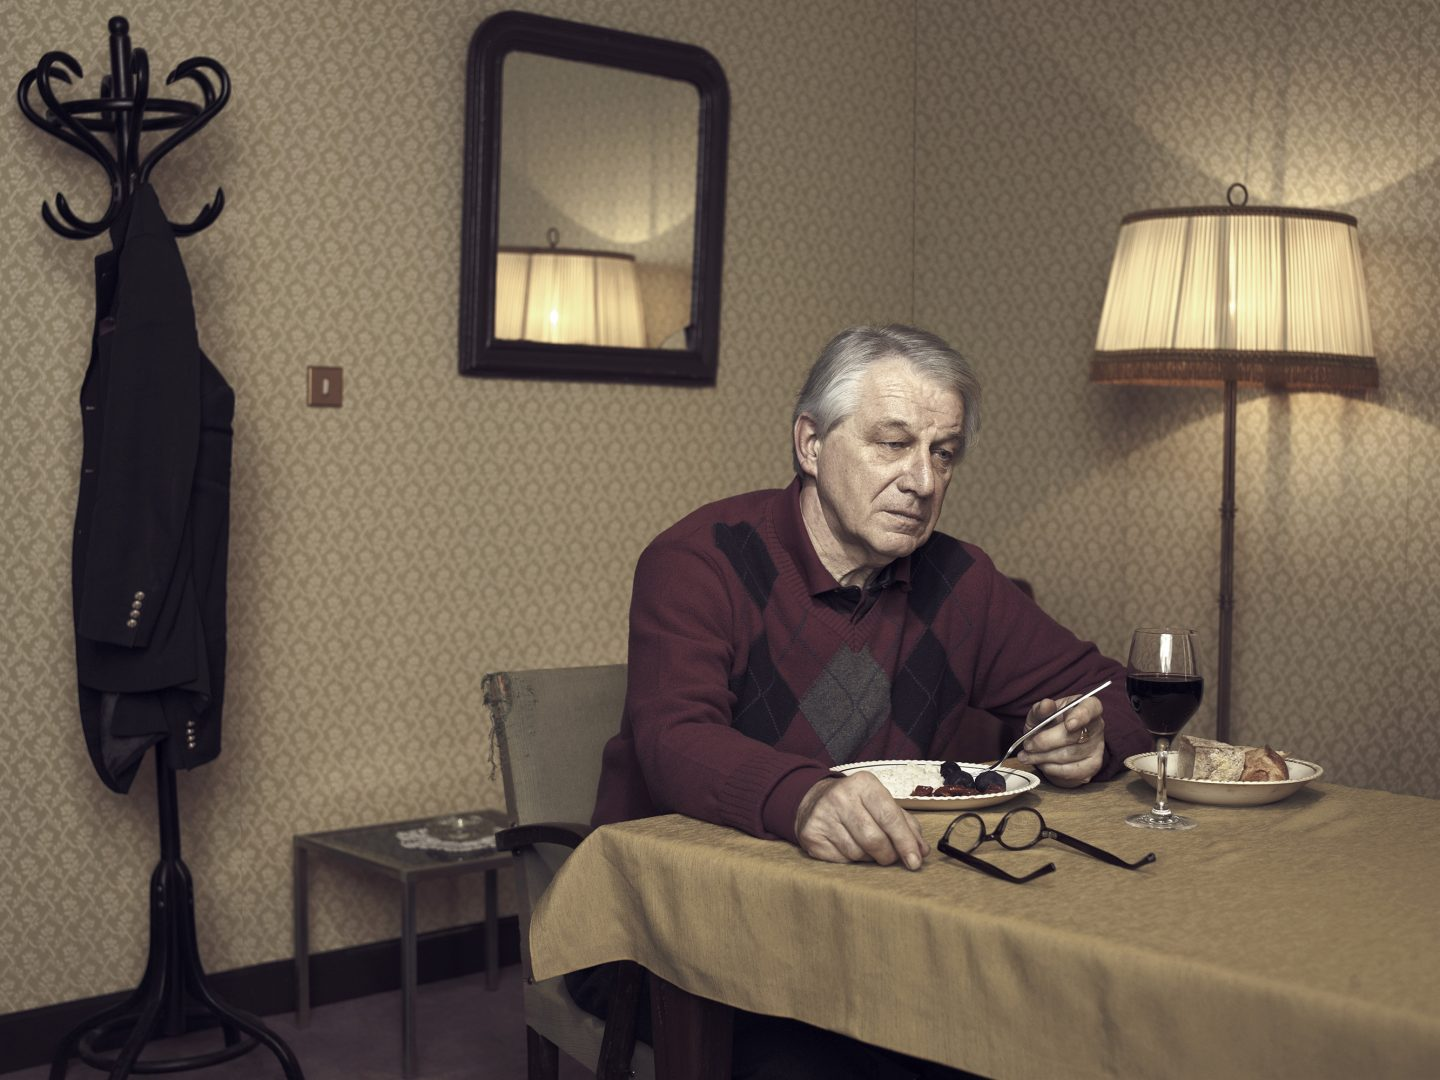 Lonely man having diner alone in room 42 by Stefan Rappo